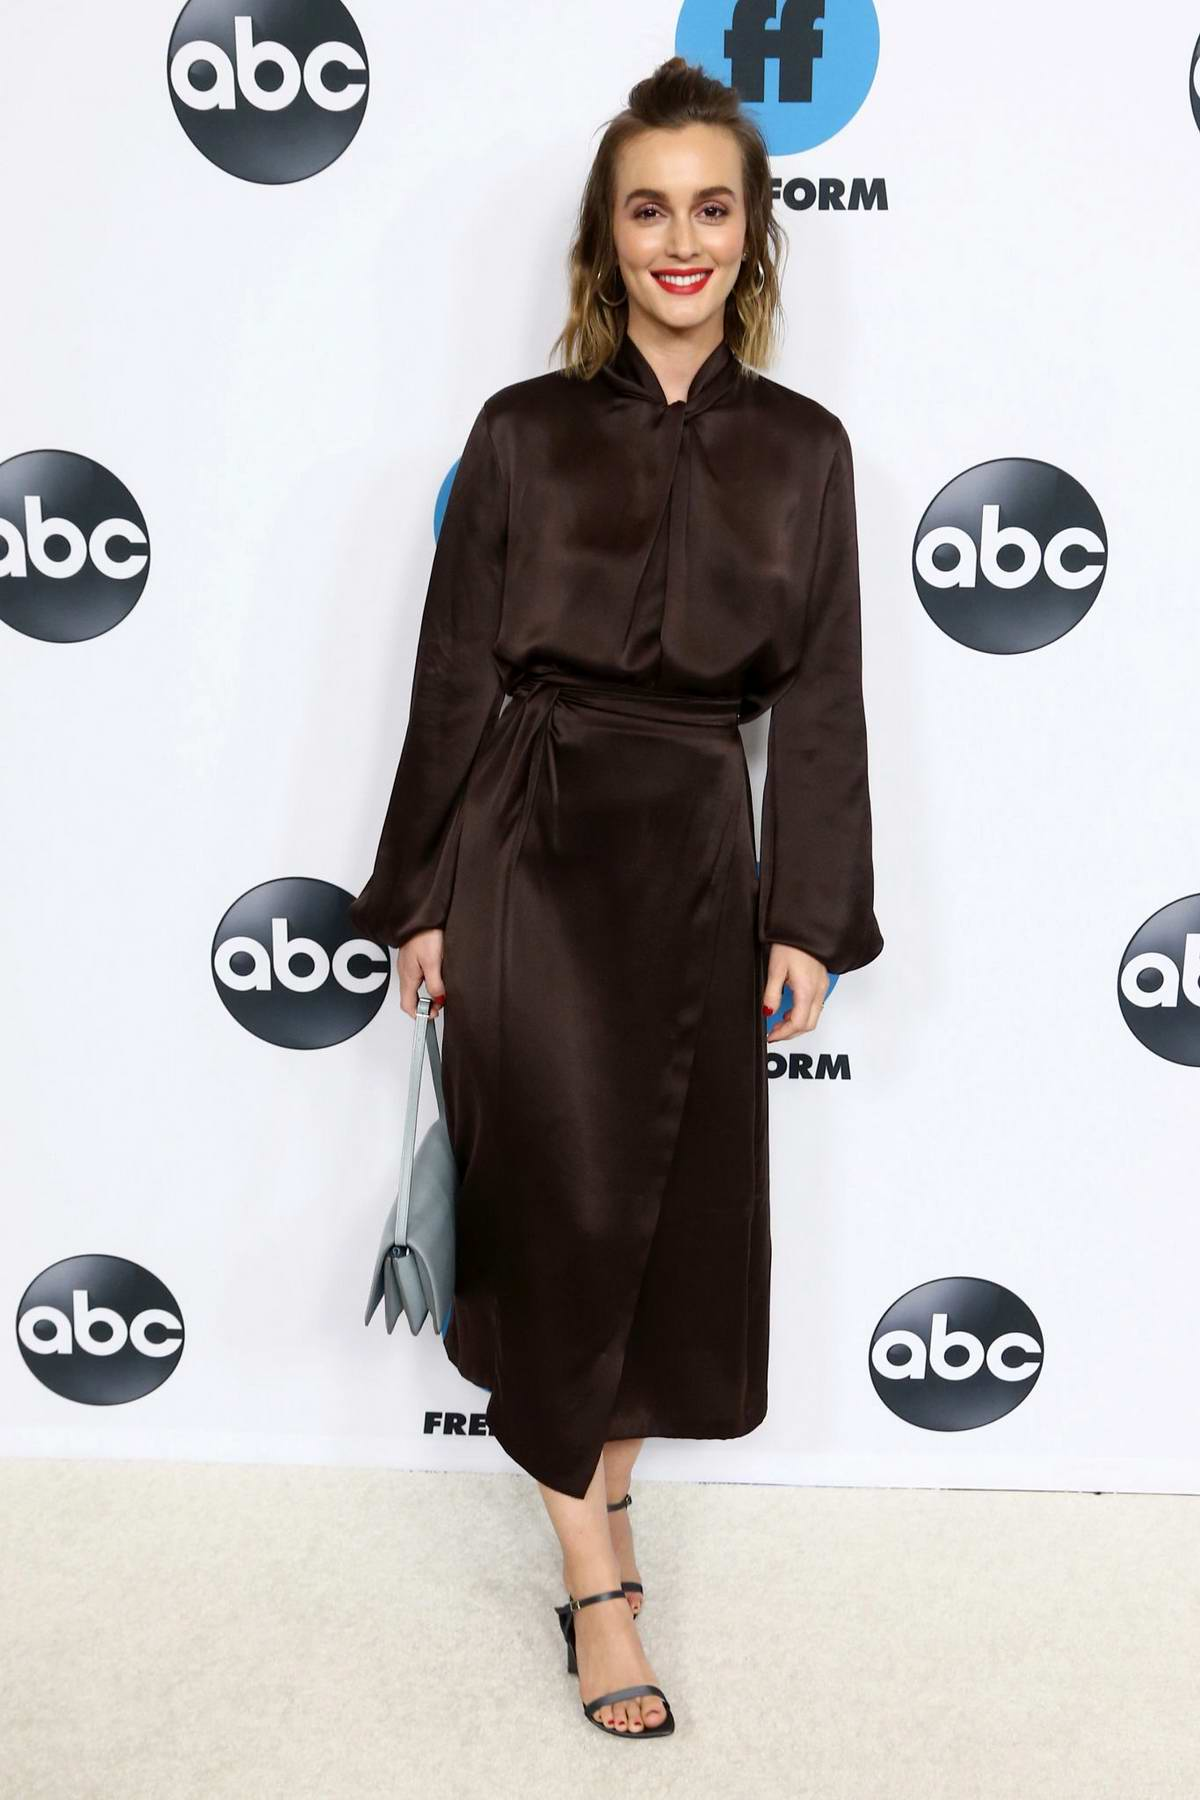 Leighton Meester attends the Freeform's TCA Winter Press Tour in Los Angeles